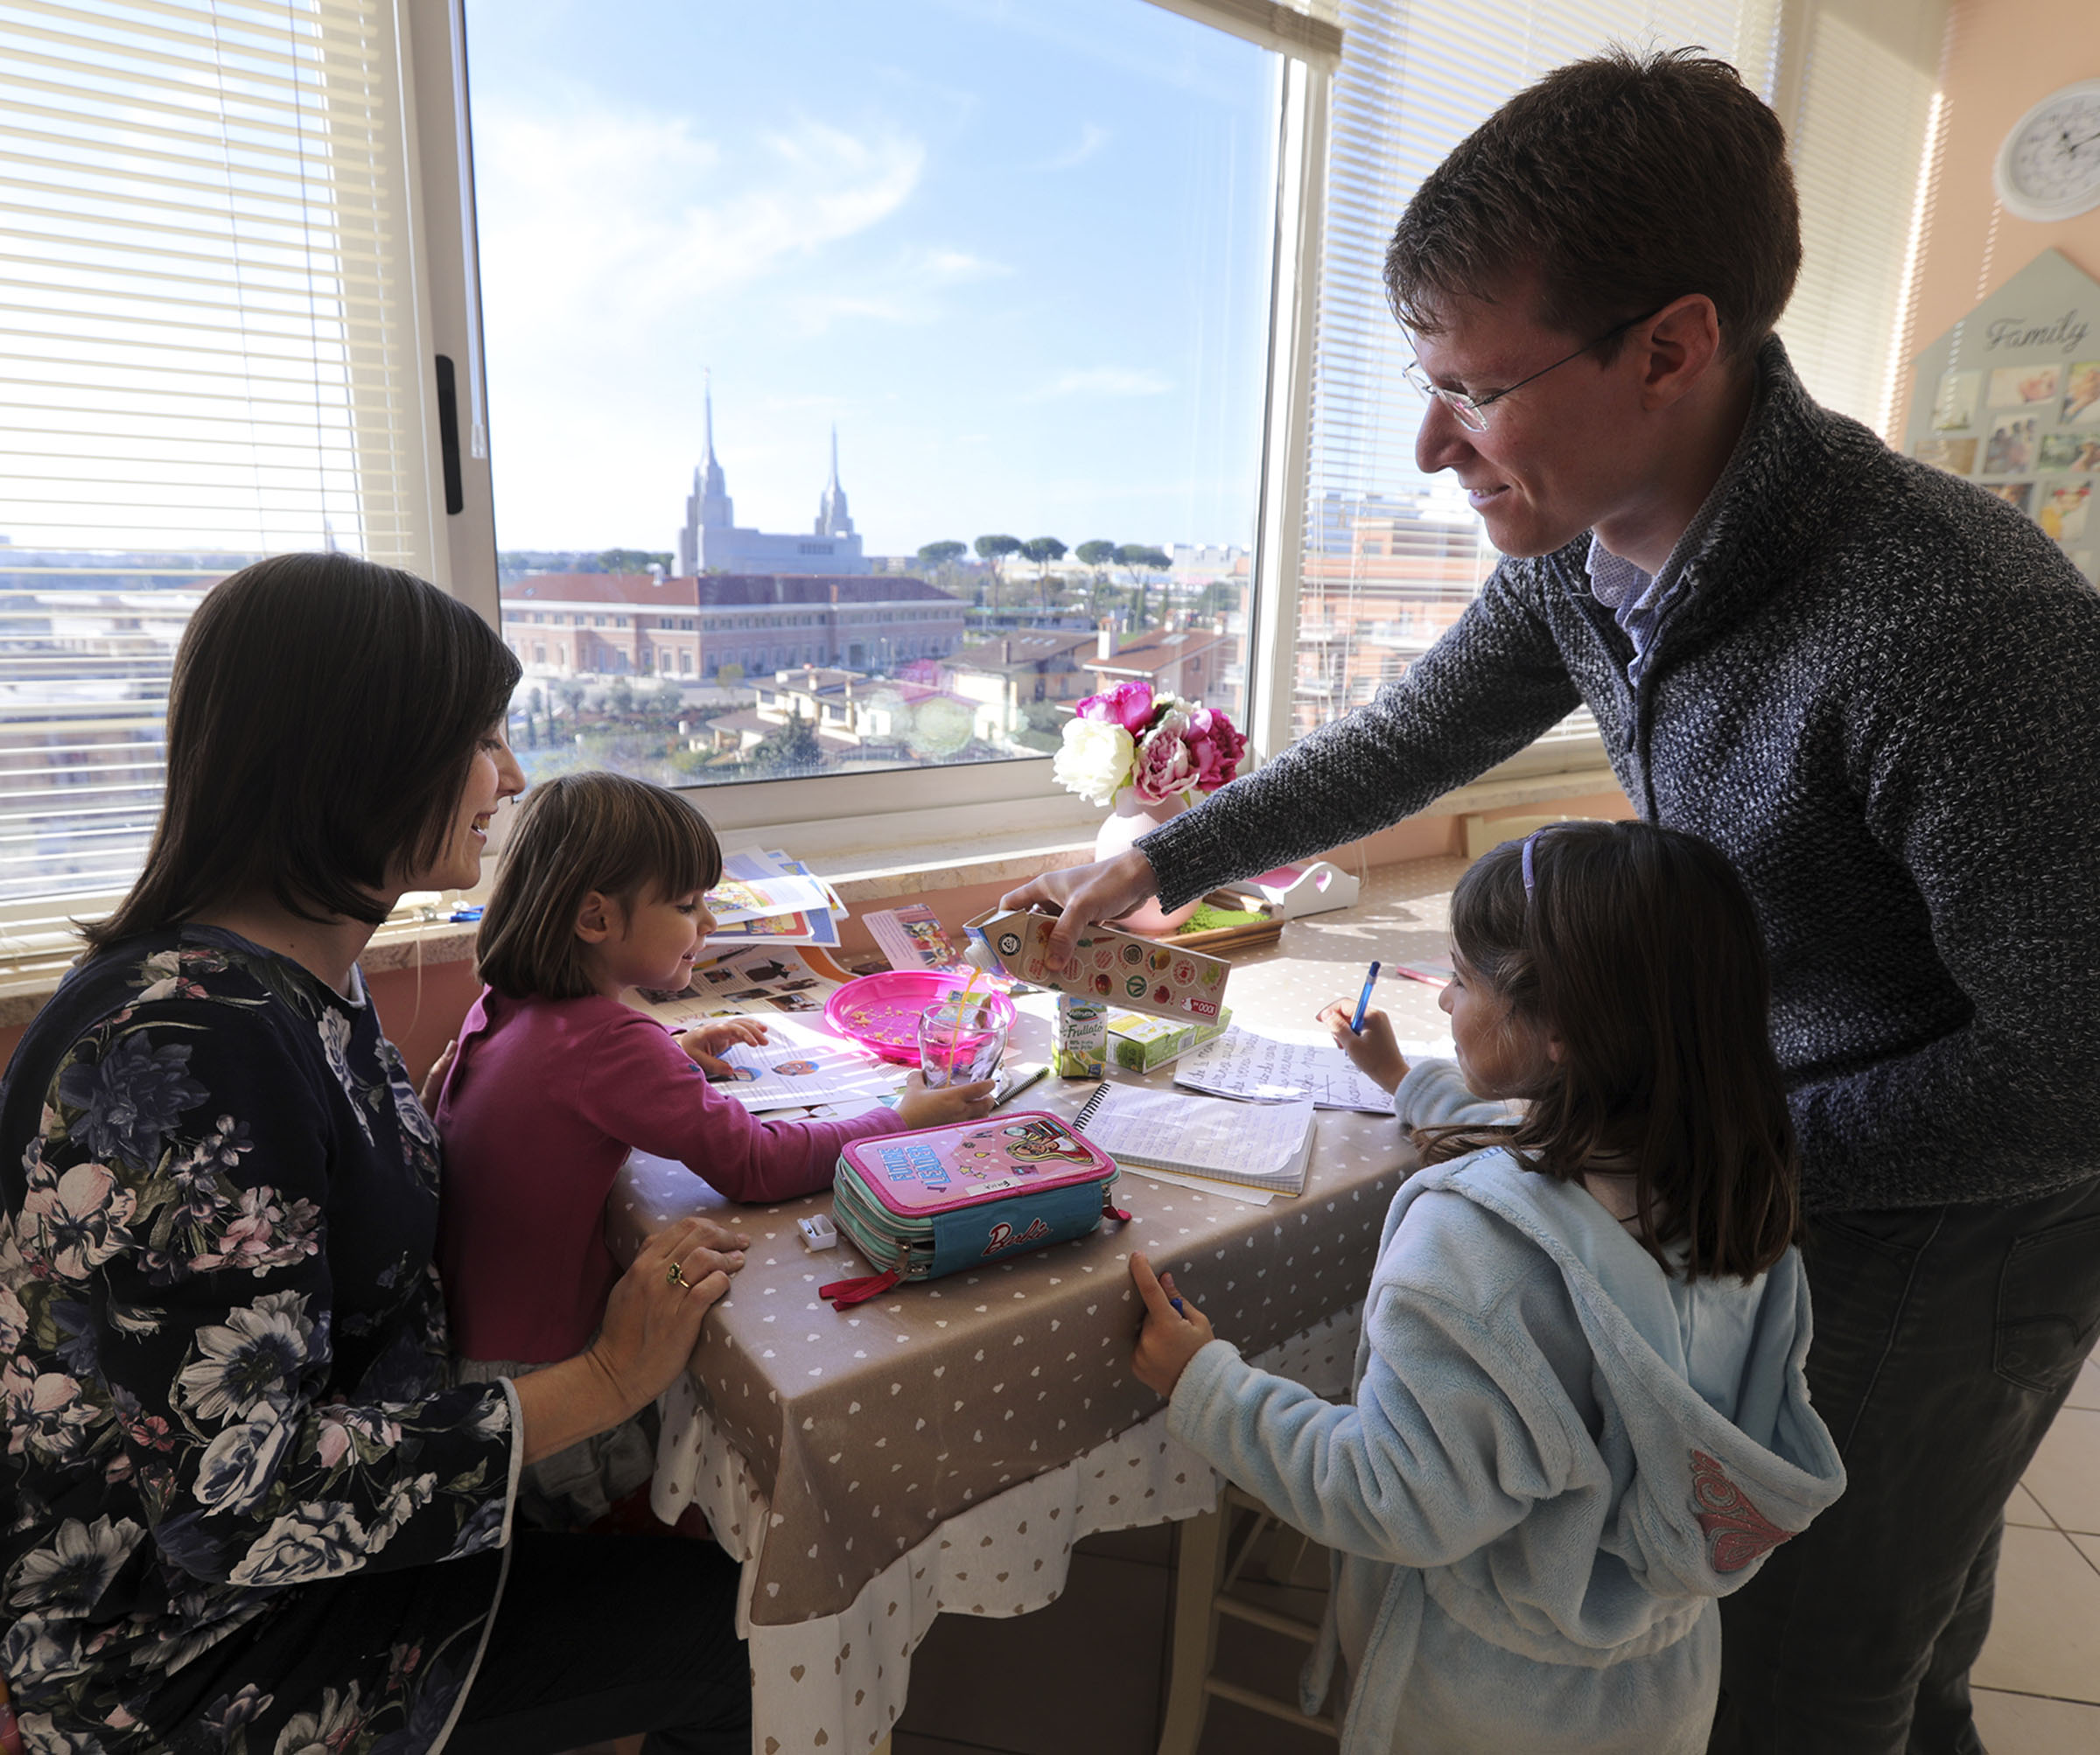 Daniele Salerno pours orange juice for his daughter Alice as she sits with her mother Norma and sister Emma at home in Rome, Italy, on Sunday morning, Nov. 18, 2018.